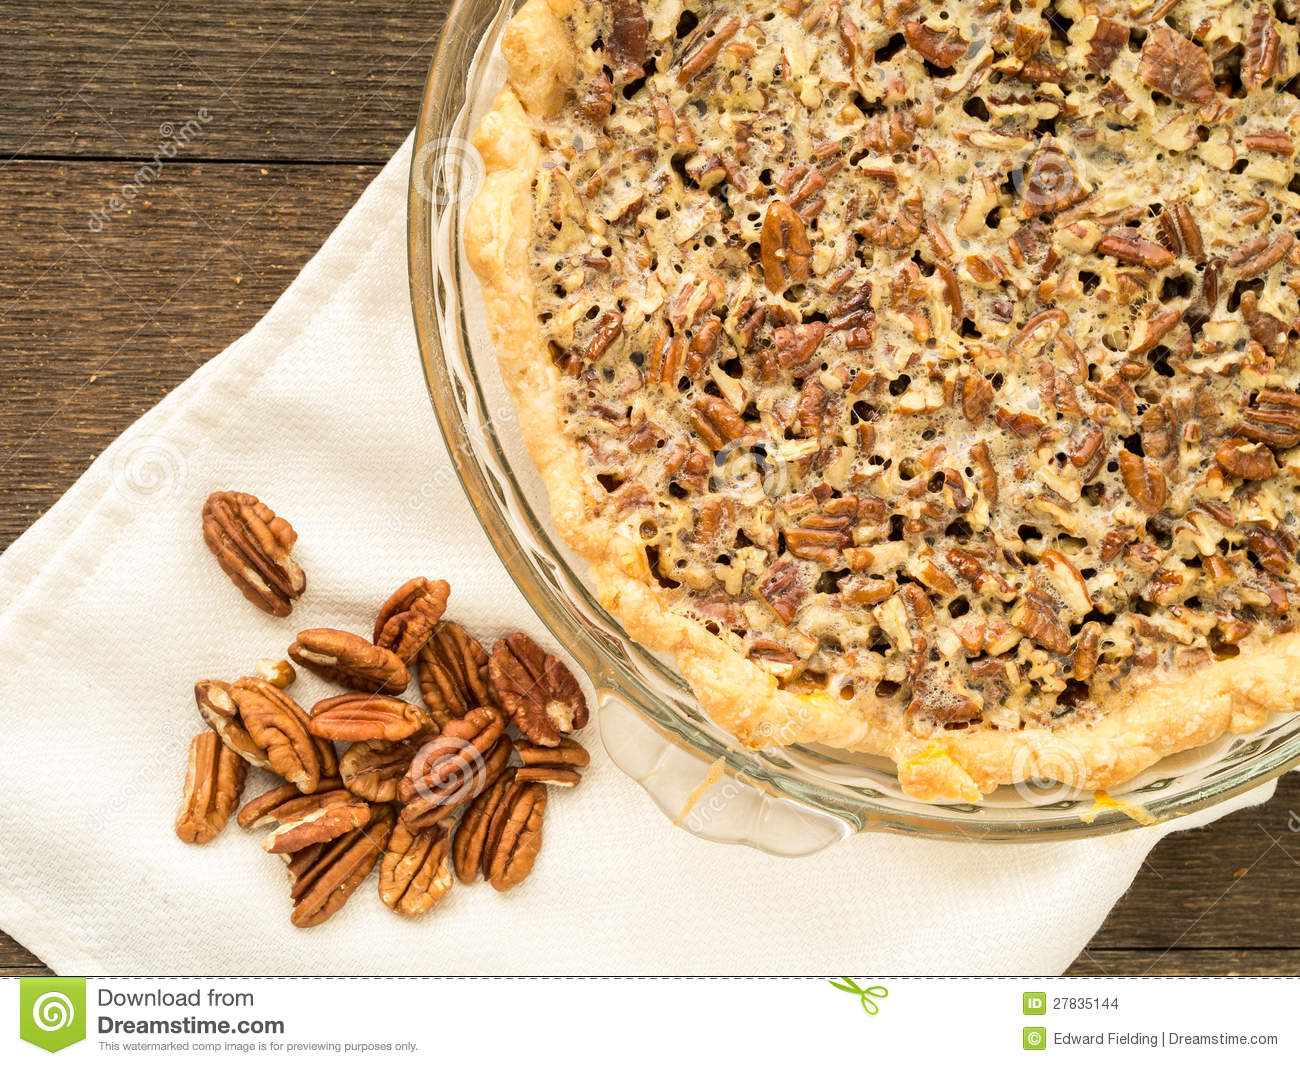 Fresh Baked Pecan Pie And A Pile Of Raw Pecan Nut Meats